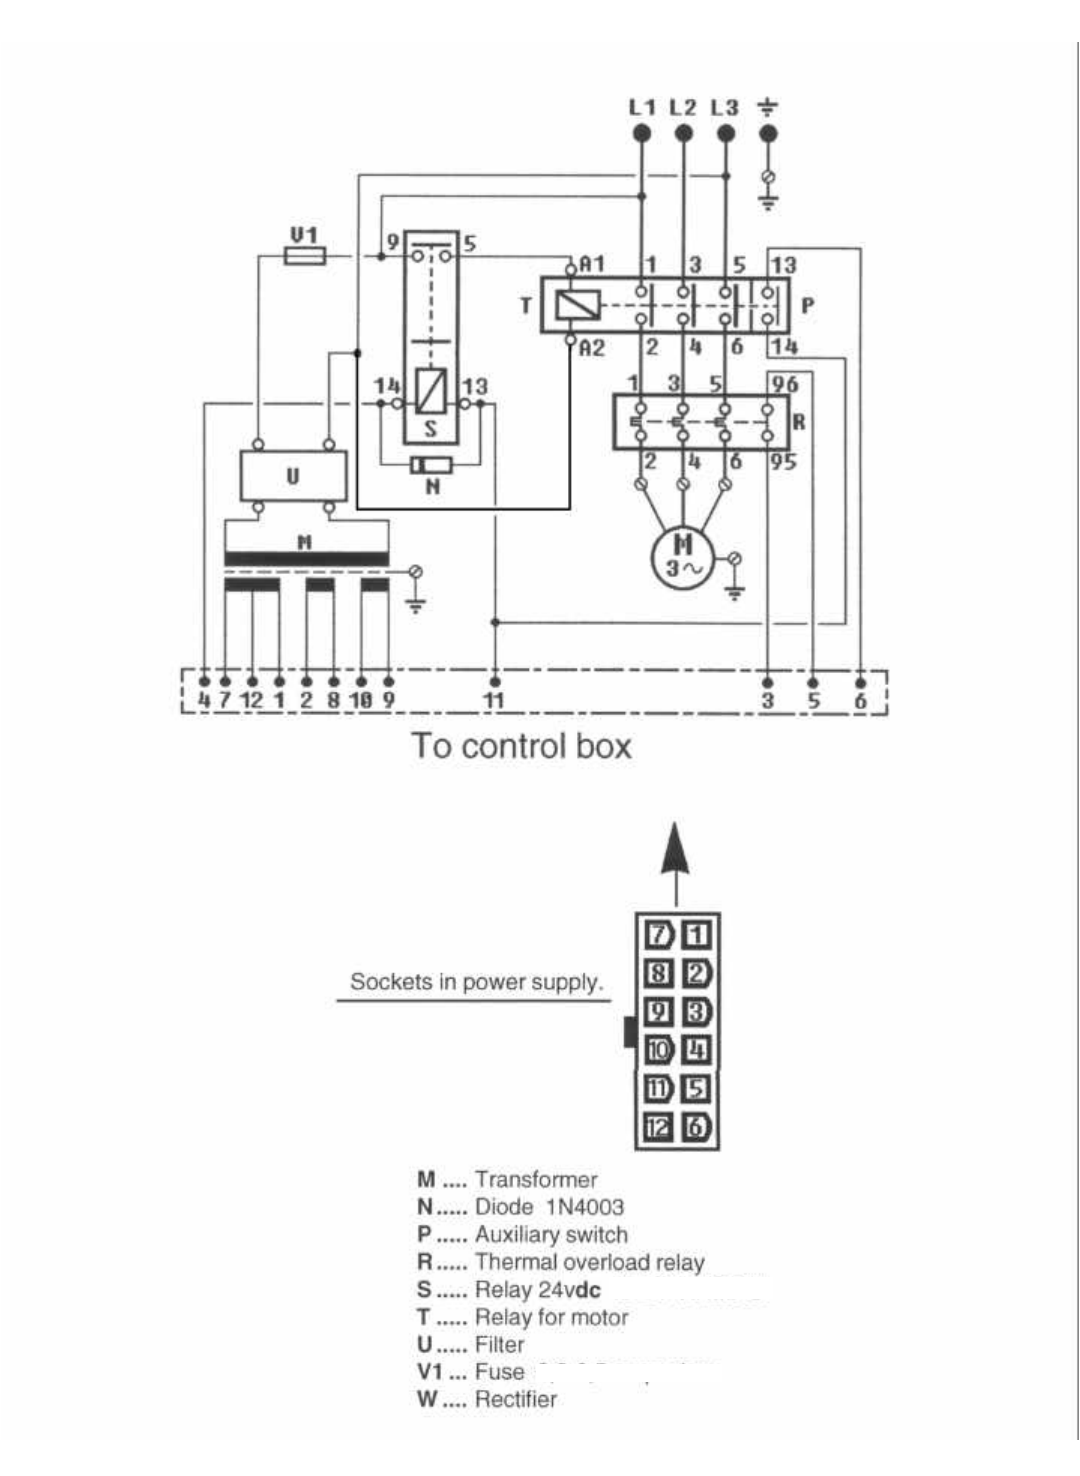 Holder 14 furthermore Wiring Diagram Cat 3208 besides Cat 11 Wiring Diagram Cat together with Cat 5 Wiring Diagram Legrand moreover Cat5 Home  work Wiring Diagram. on ideal cat 5 wiring diagram